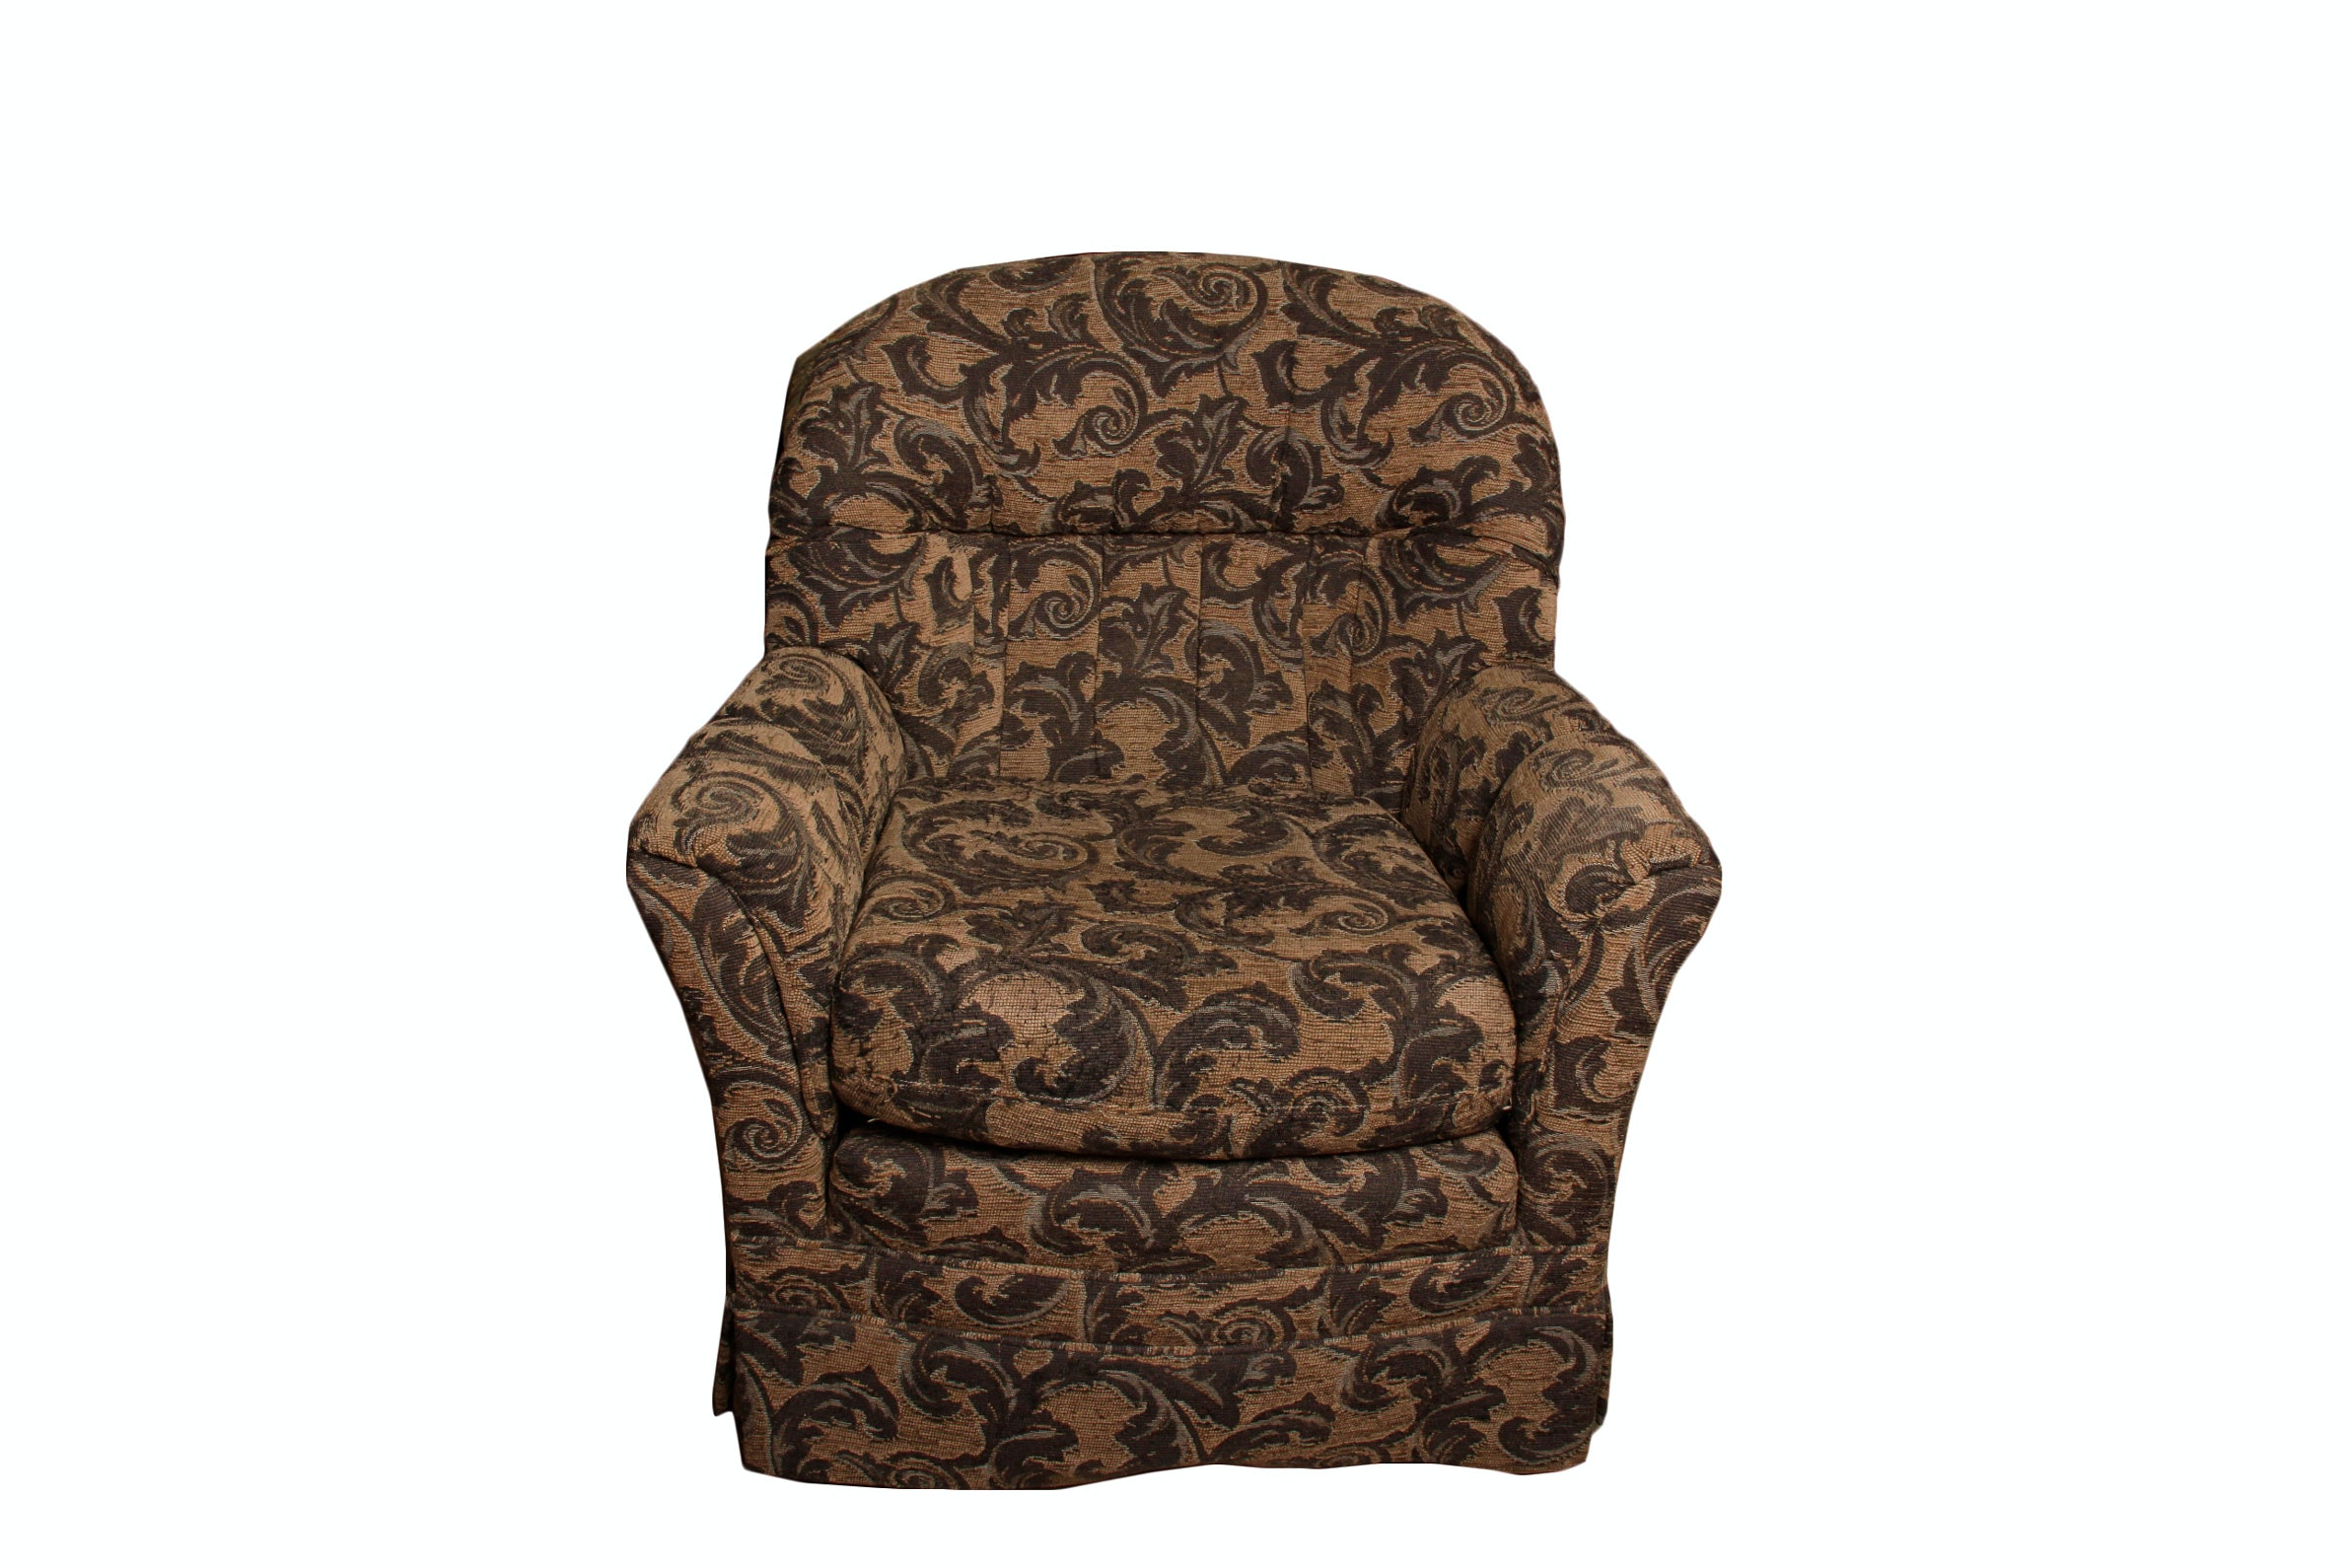 Upholstered Roll Arm Lounge Chair